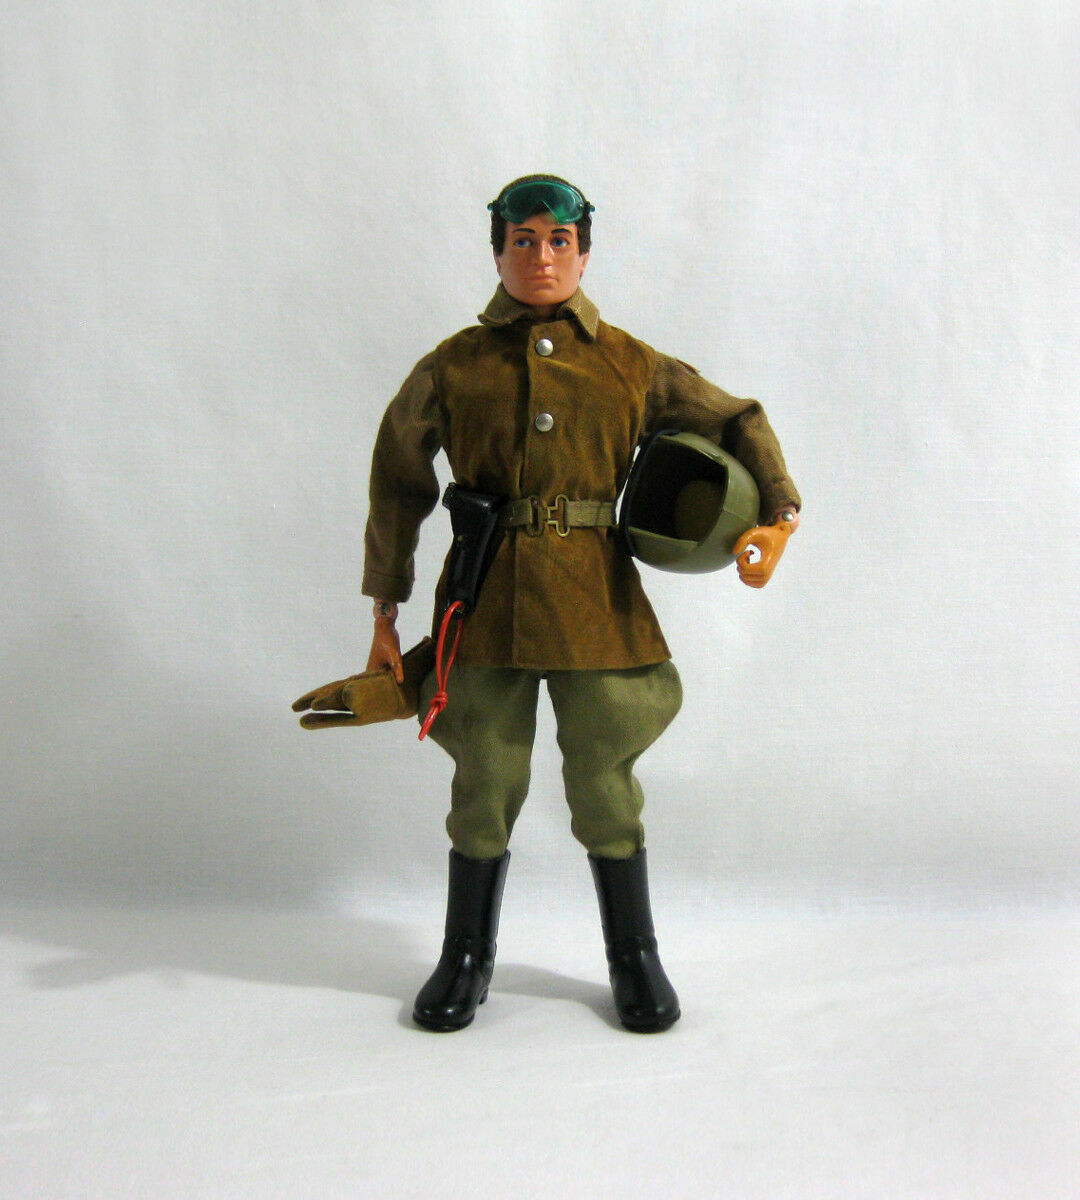 1977 Vintage Action Man ✧ Despatch Rider ✧ Palitoy Hasbro G.I JOE